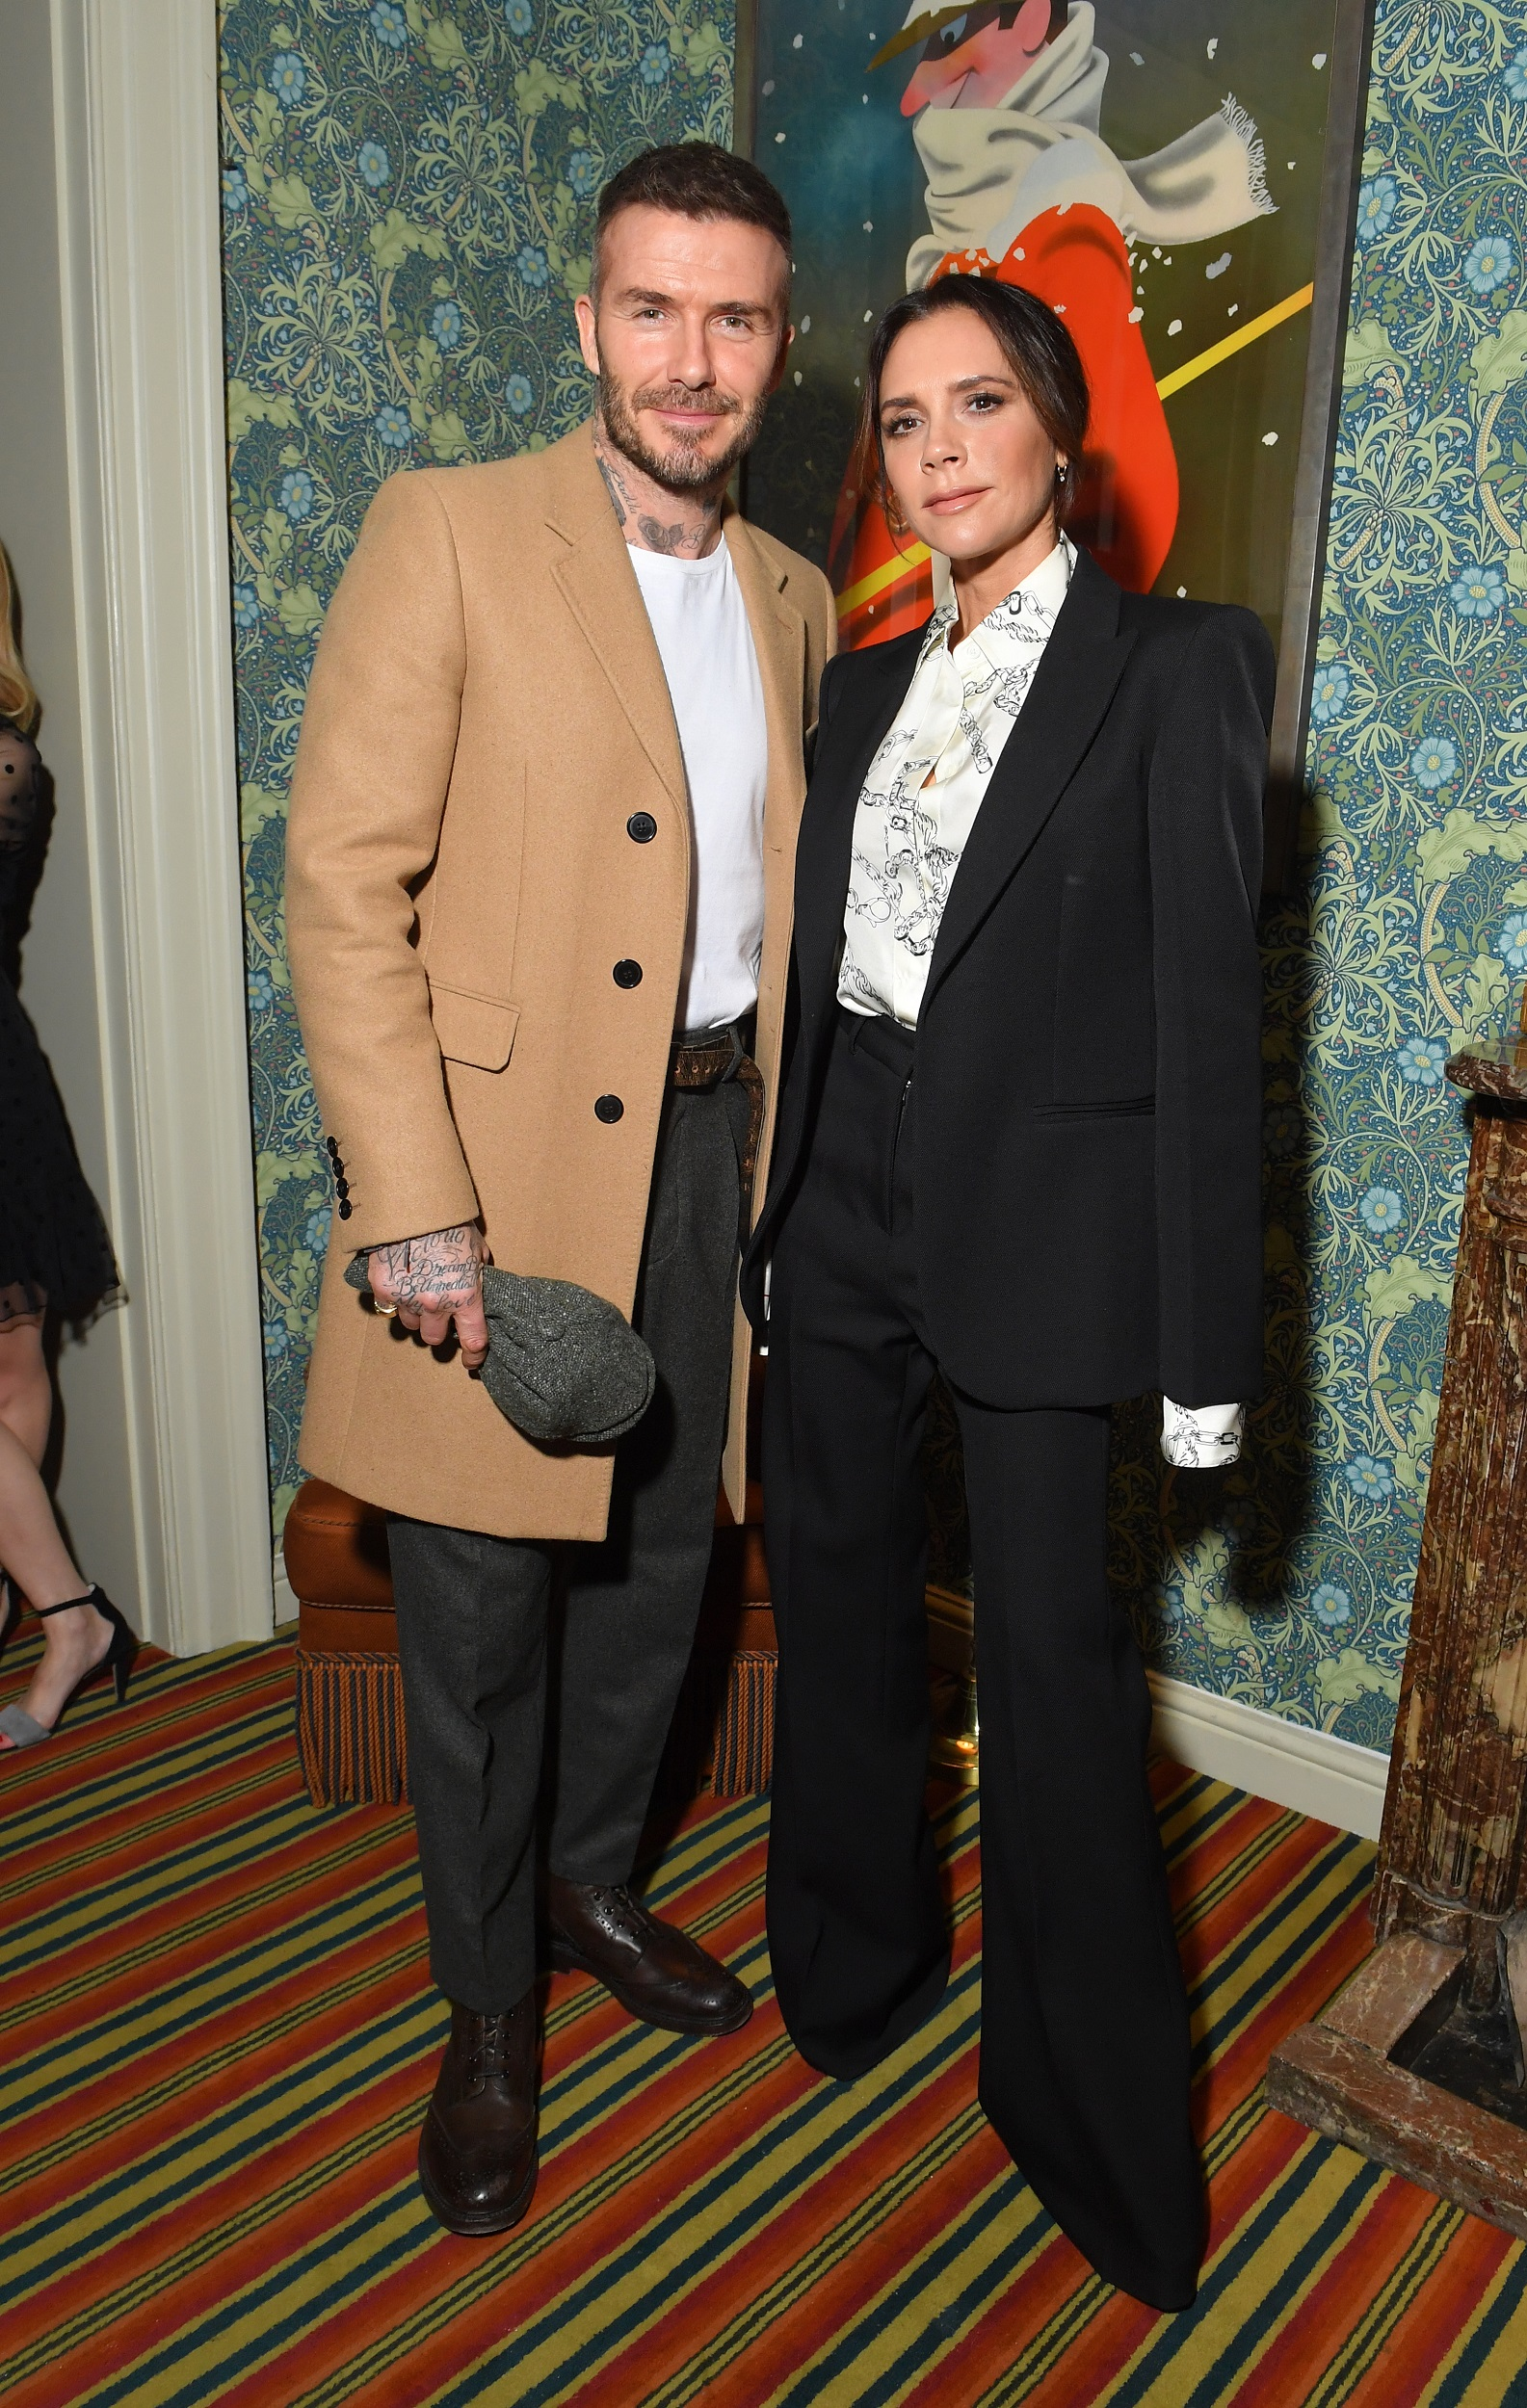 LONDON, ENGLAND - FEBRUARY 17:  (L-R) Victoria and David Beckham attend the Victoria Beckham x YouTube Fashion & Beauty After Party at London Fashion Week hosted by Derek Blasberg and David Beckham, at Marks Club on February 17, 2019 in London, England. (Photo by Victor Boyko/Getty Images for YouTube)